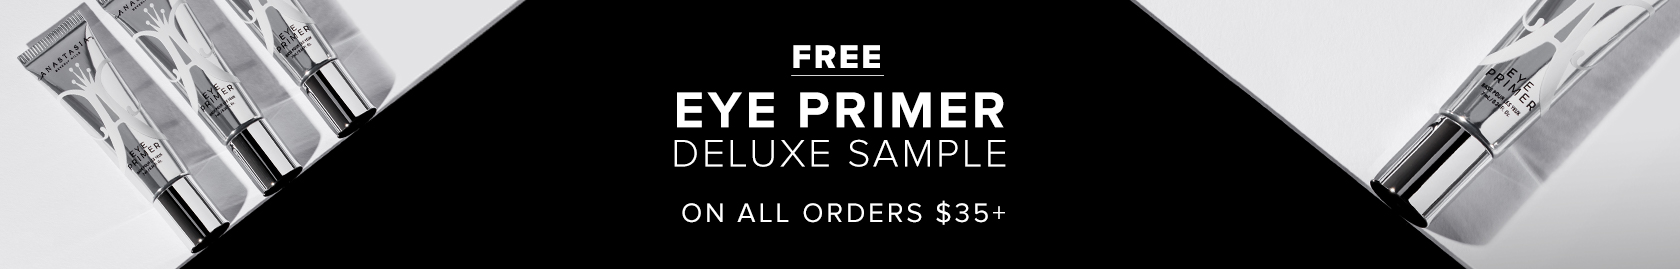 Free Eye Primer Deluxe Sample with $35 purchase